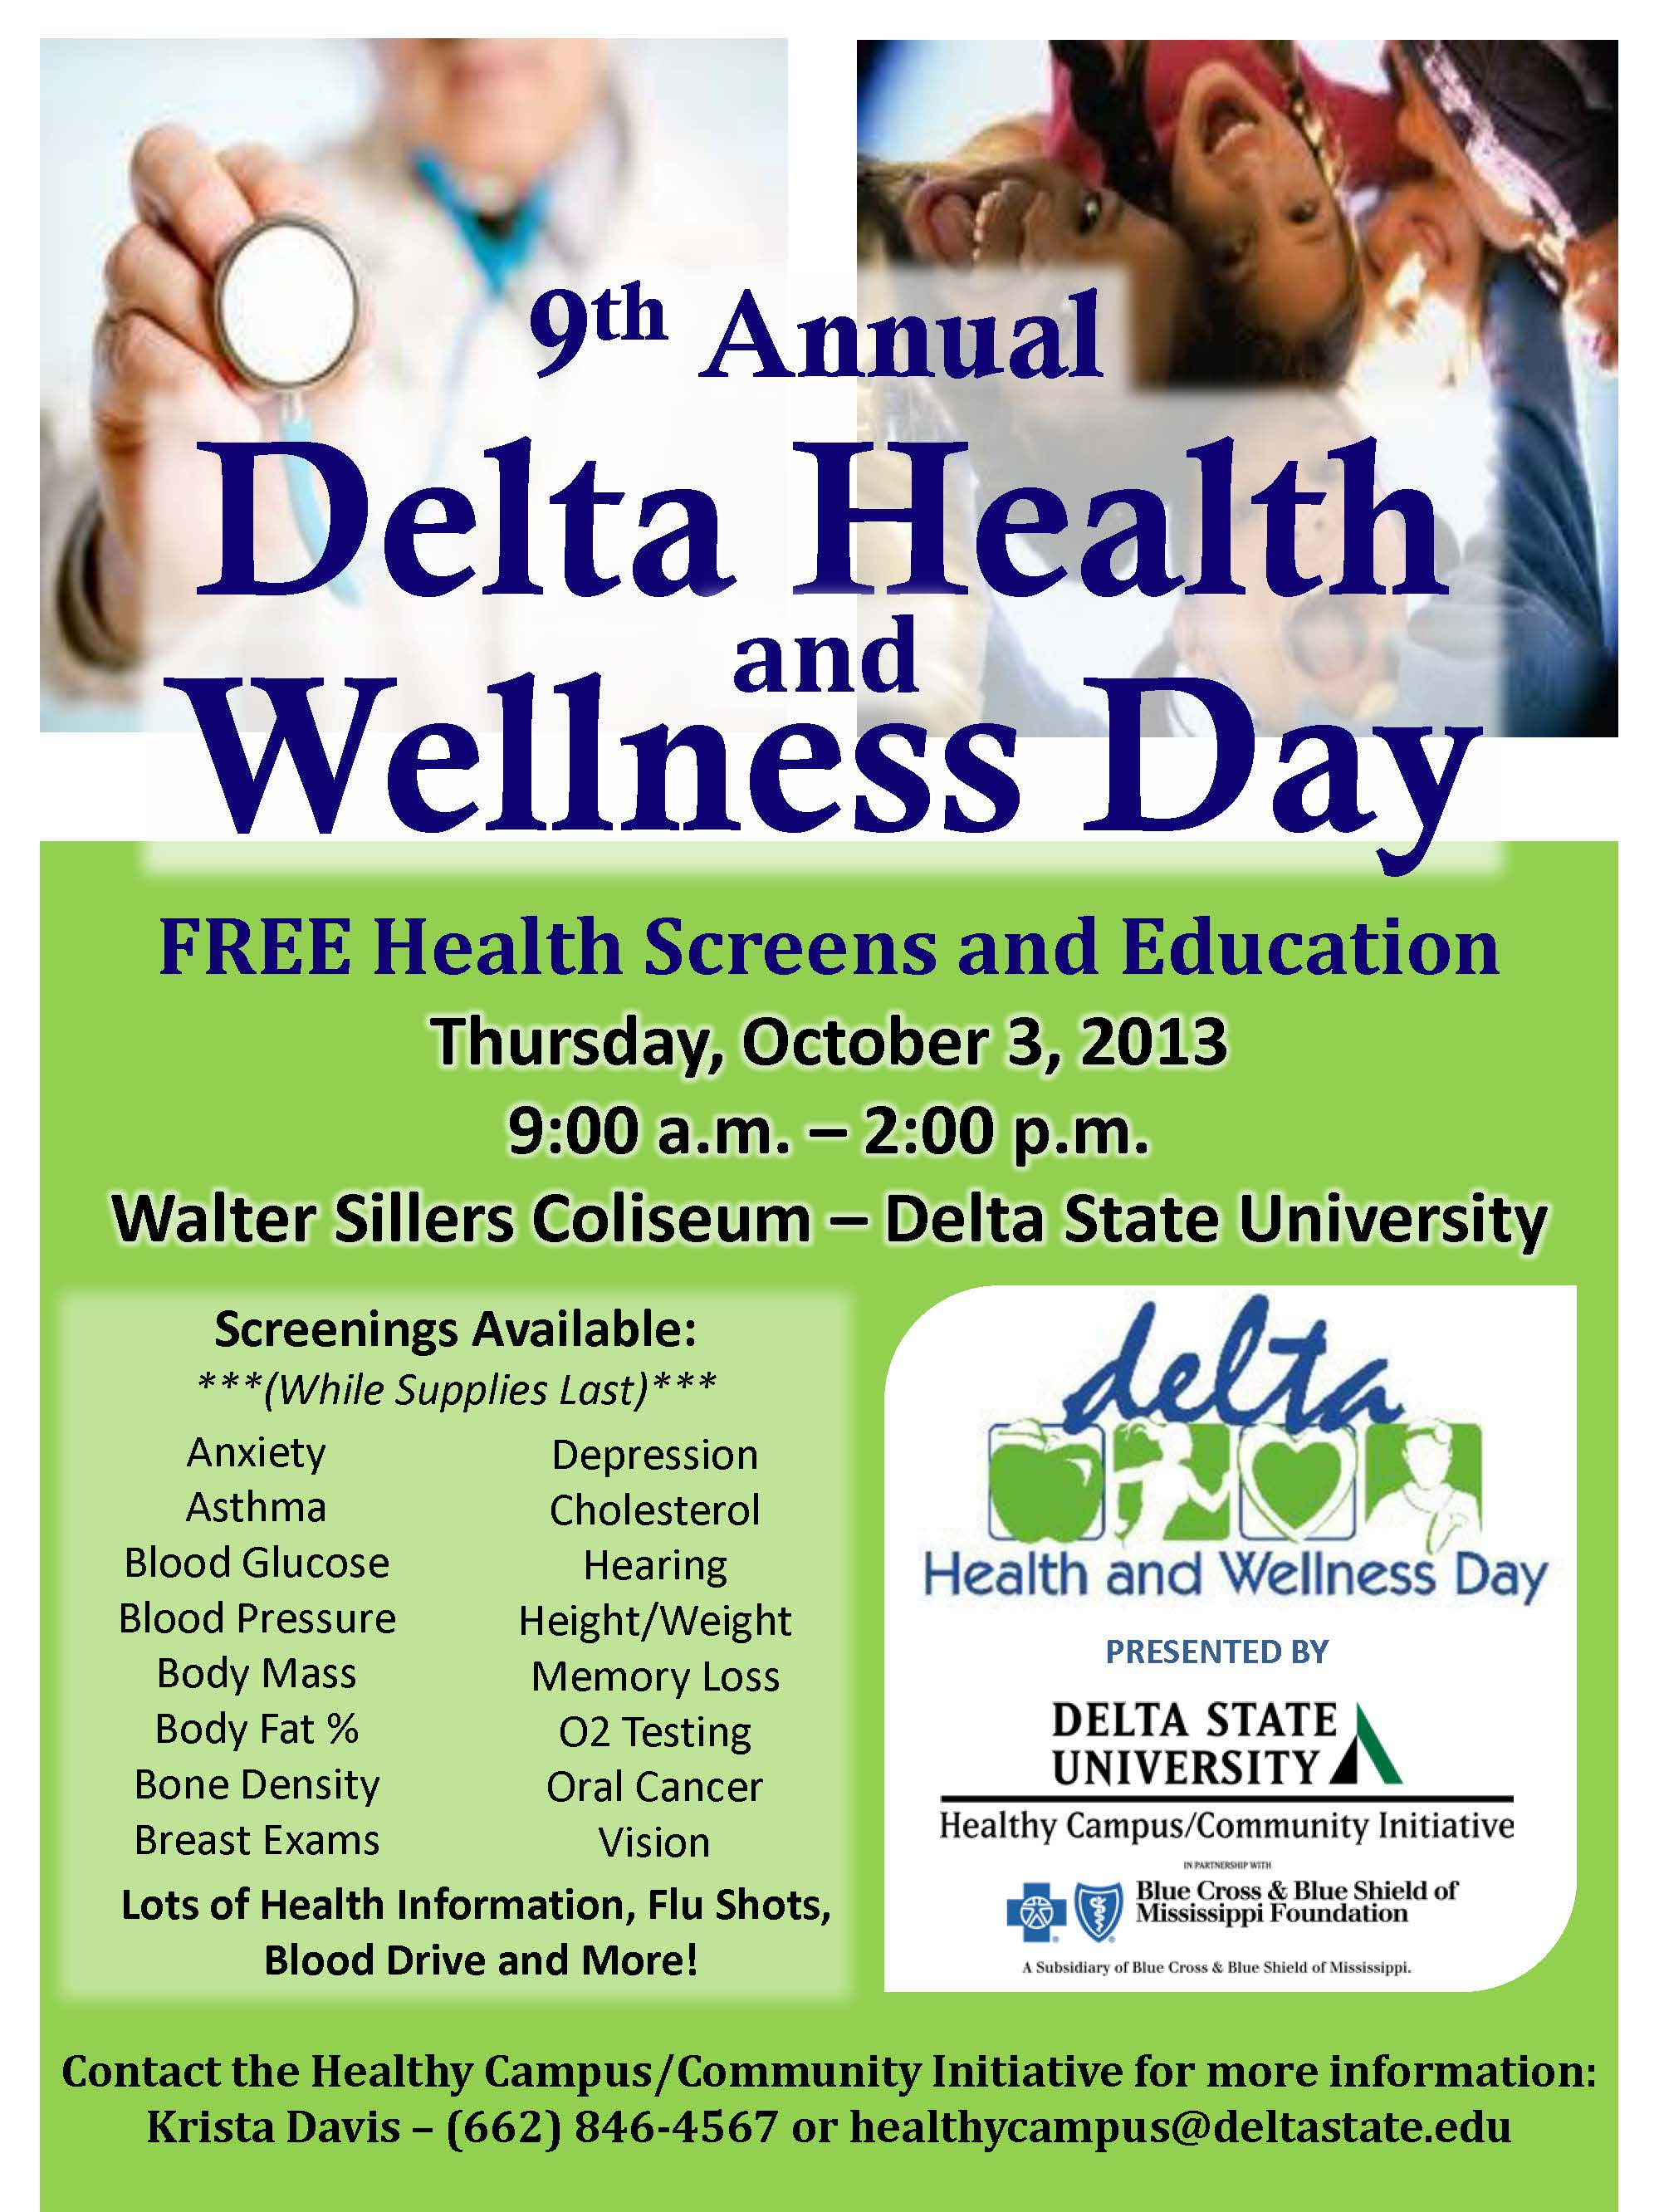 Delta Health and Wellness Day announced - News and Events